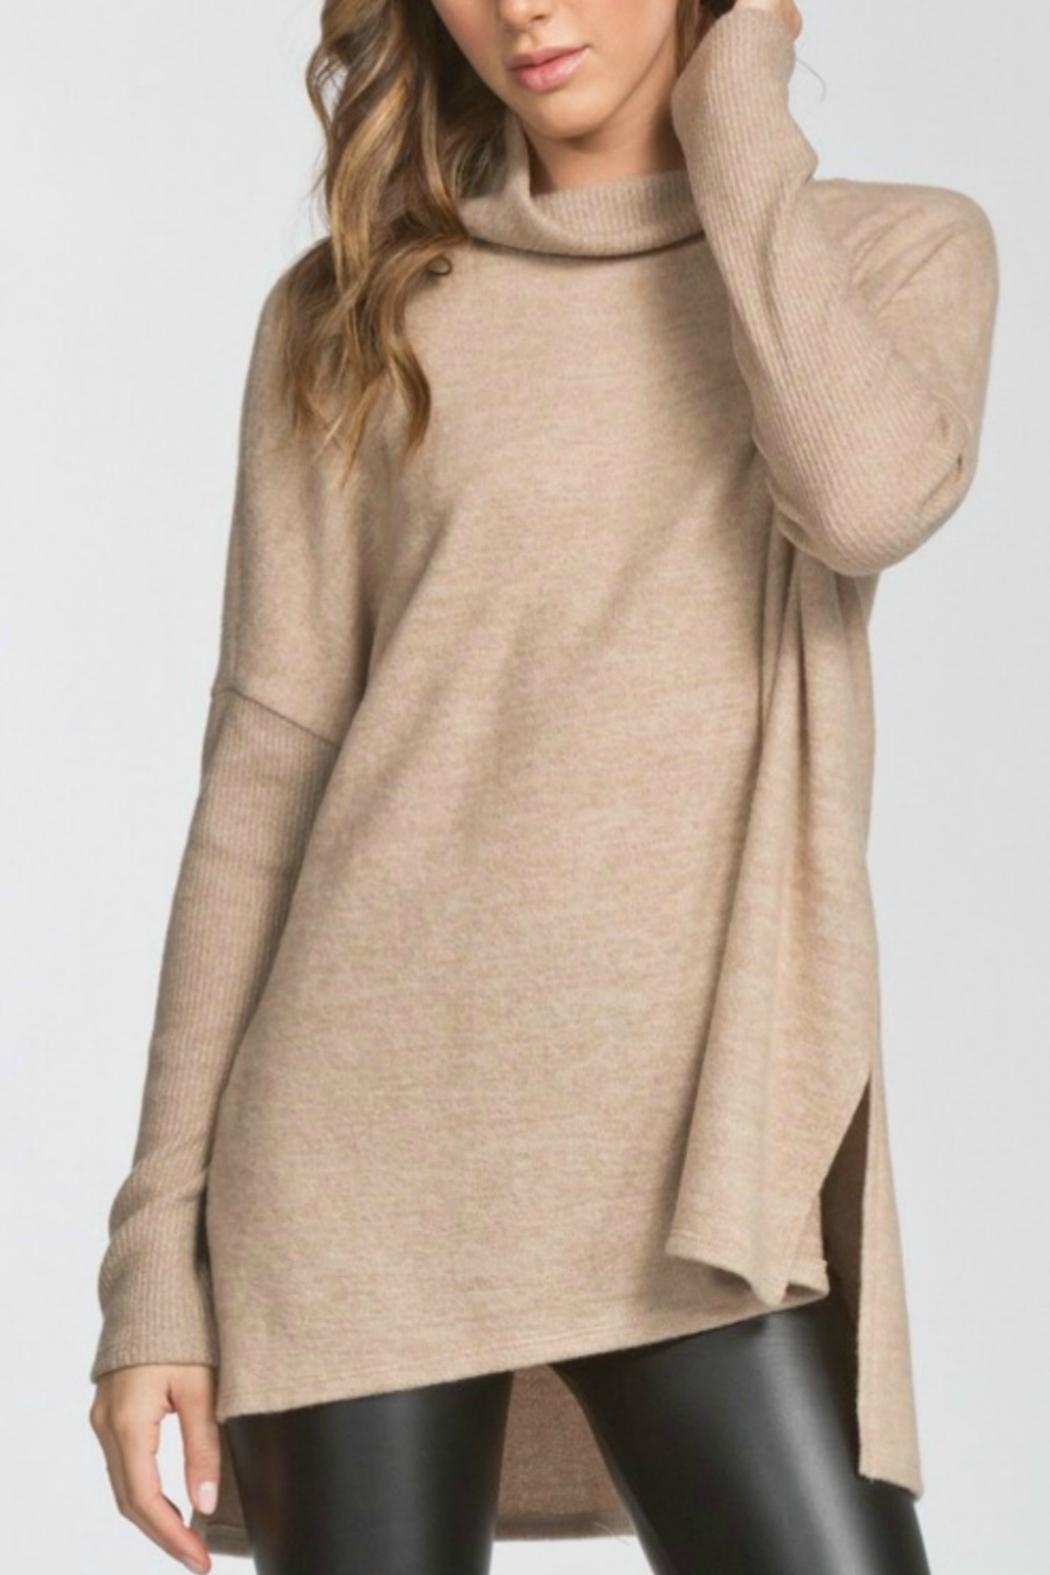 Cherish Turtleneck Hilo Tunic - Main Image